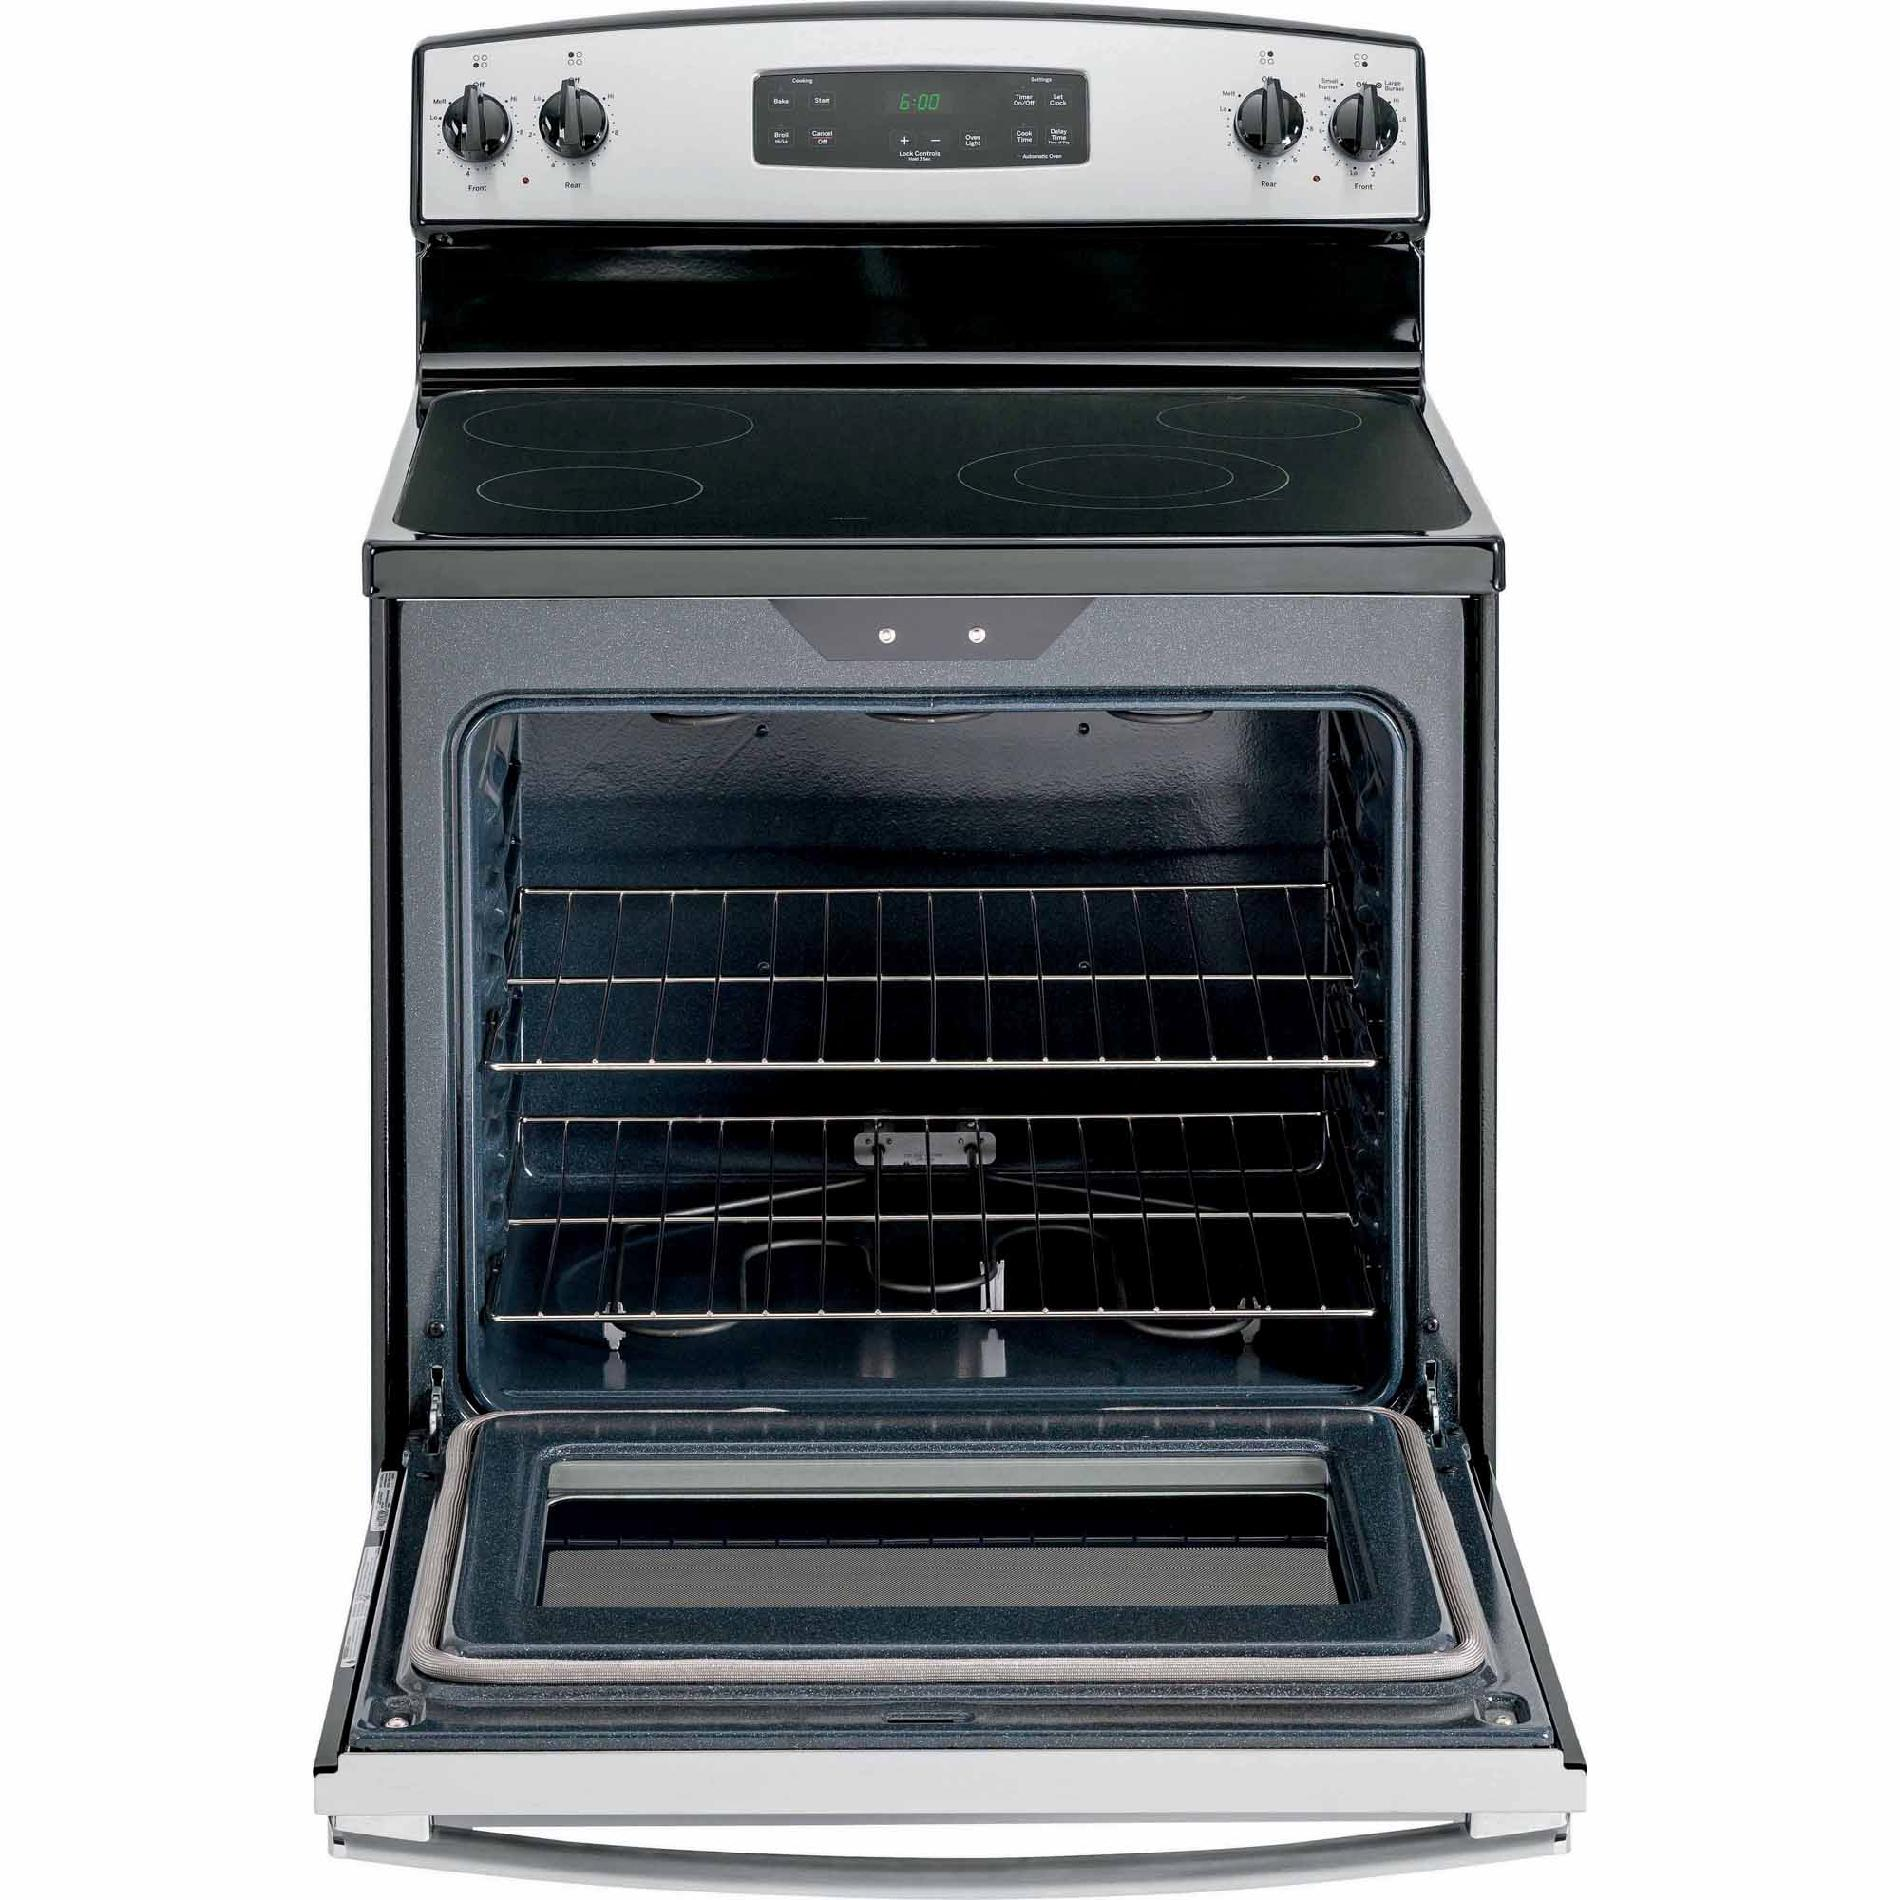 GE Appliances JBS60RFSS 5.3 cu. ft. Electric Range - Stainless Steel